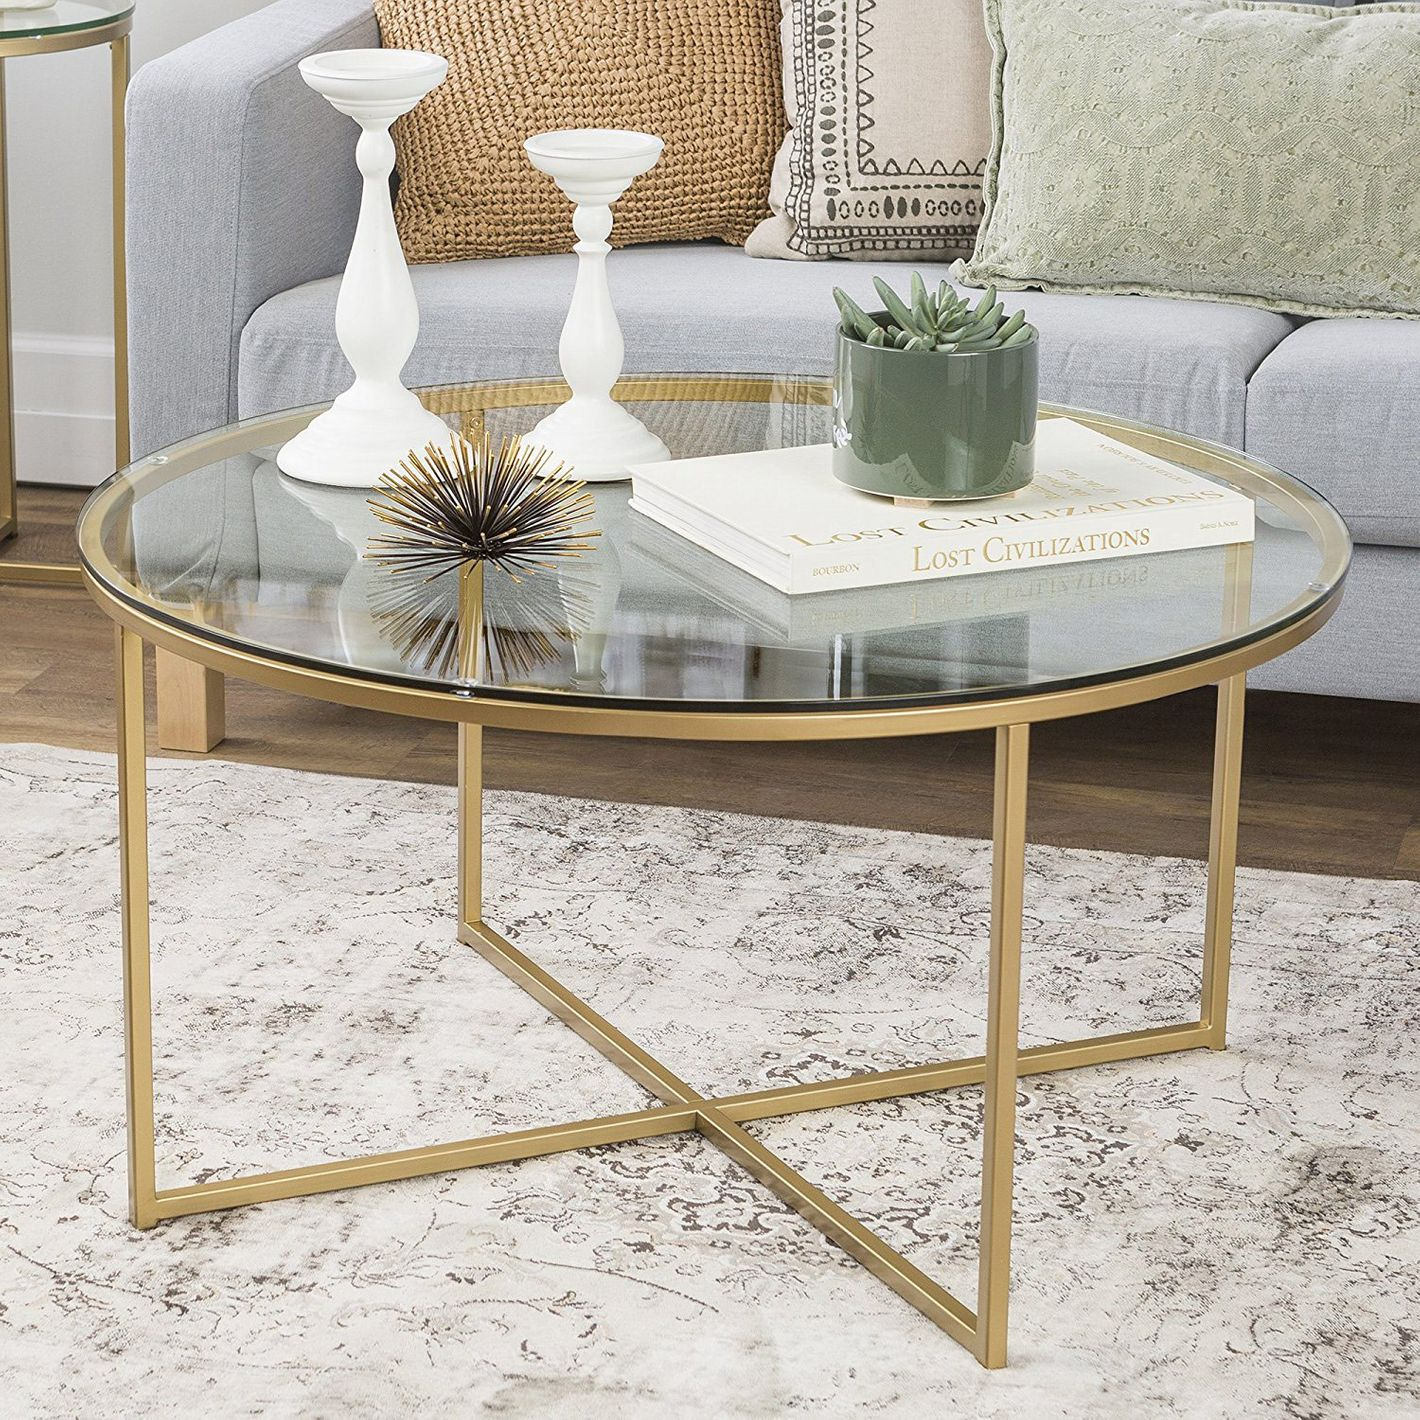 Glass Coffee Tables ~ The best glass coffee tables under